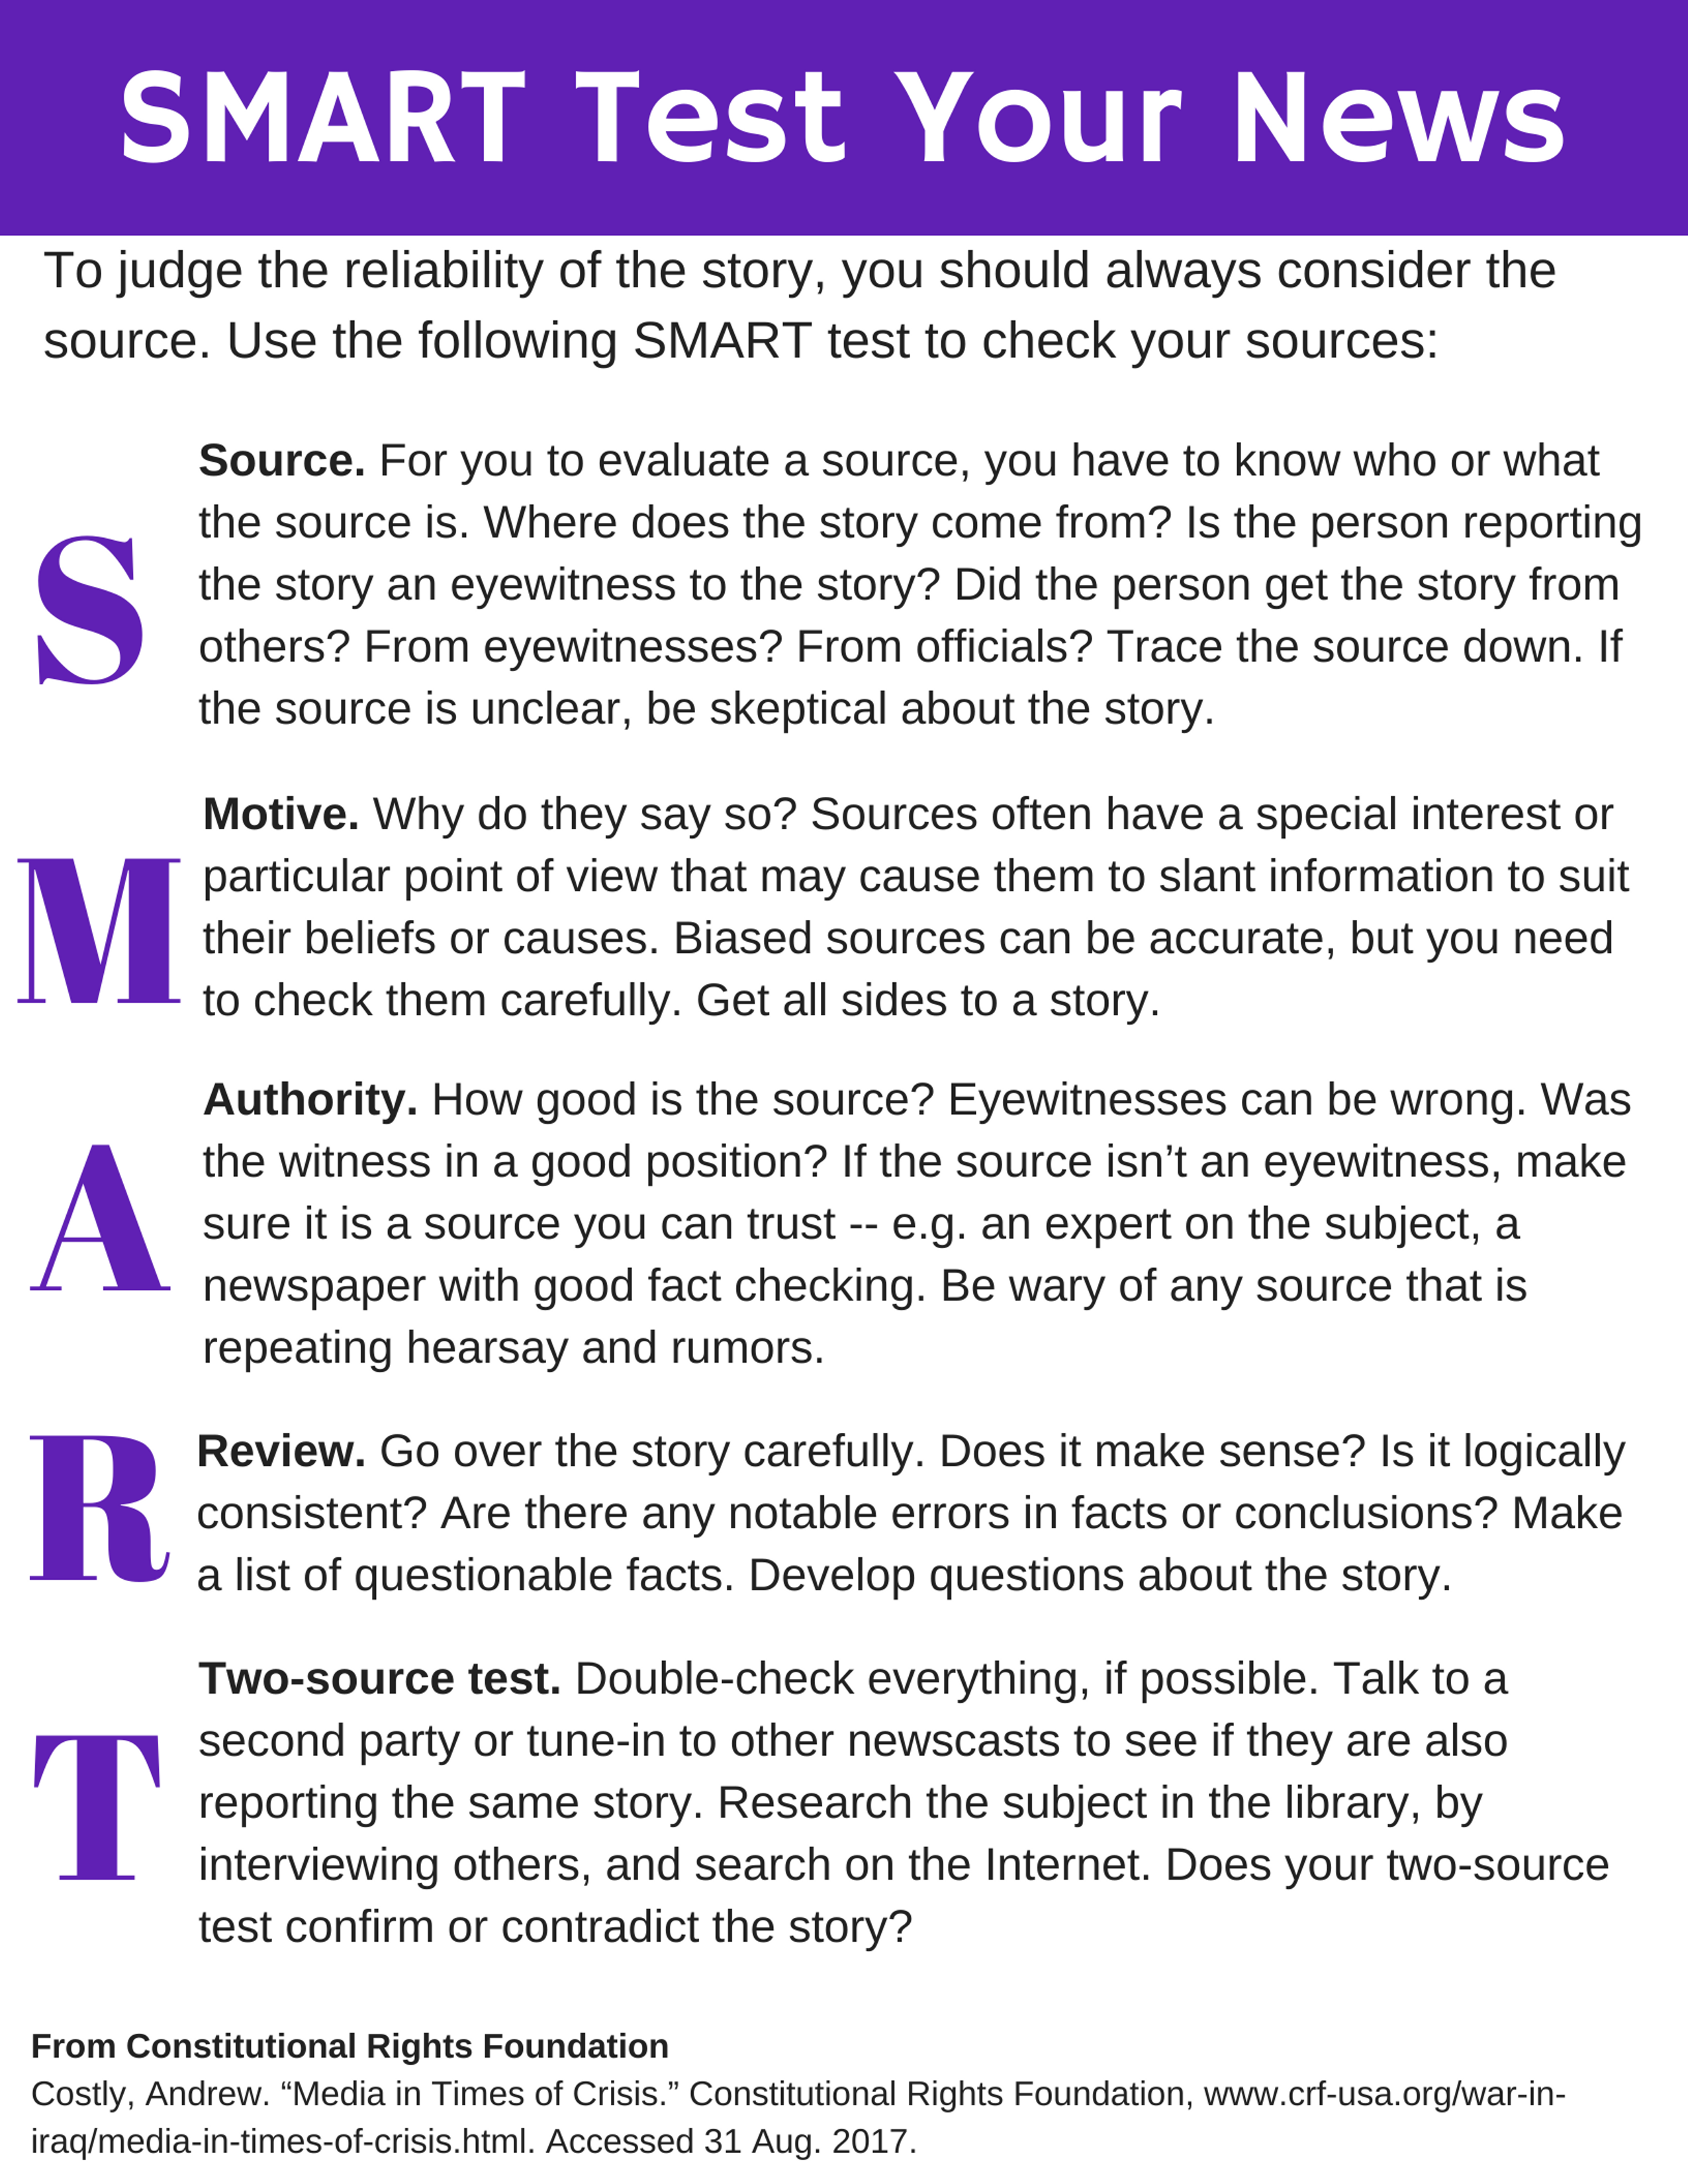 Smart Test your News see below for transcript